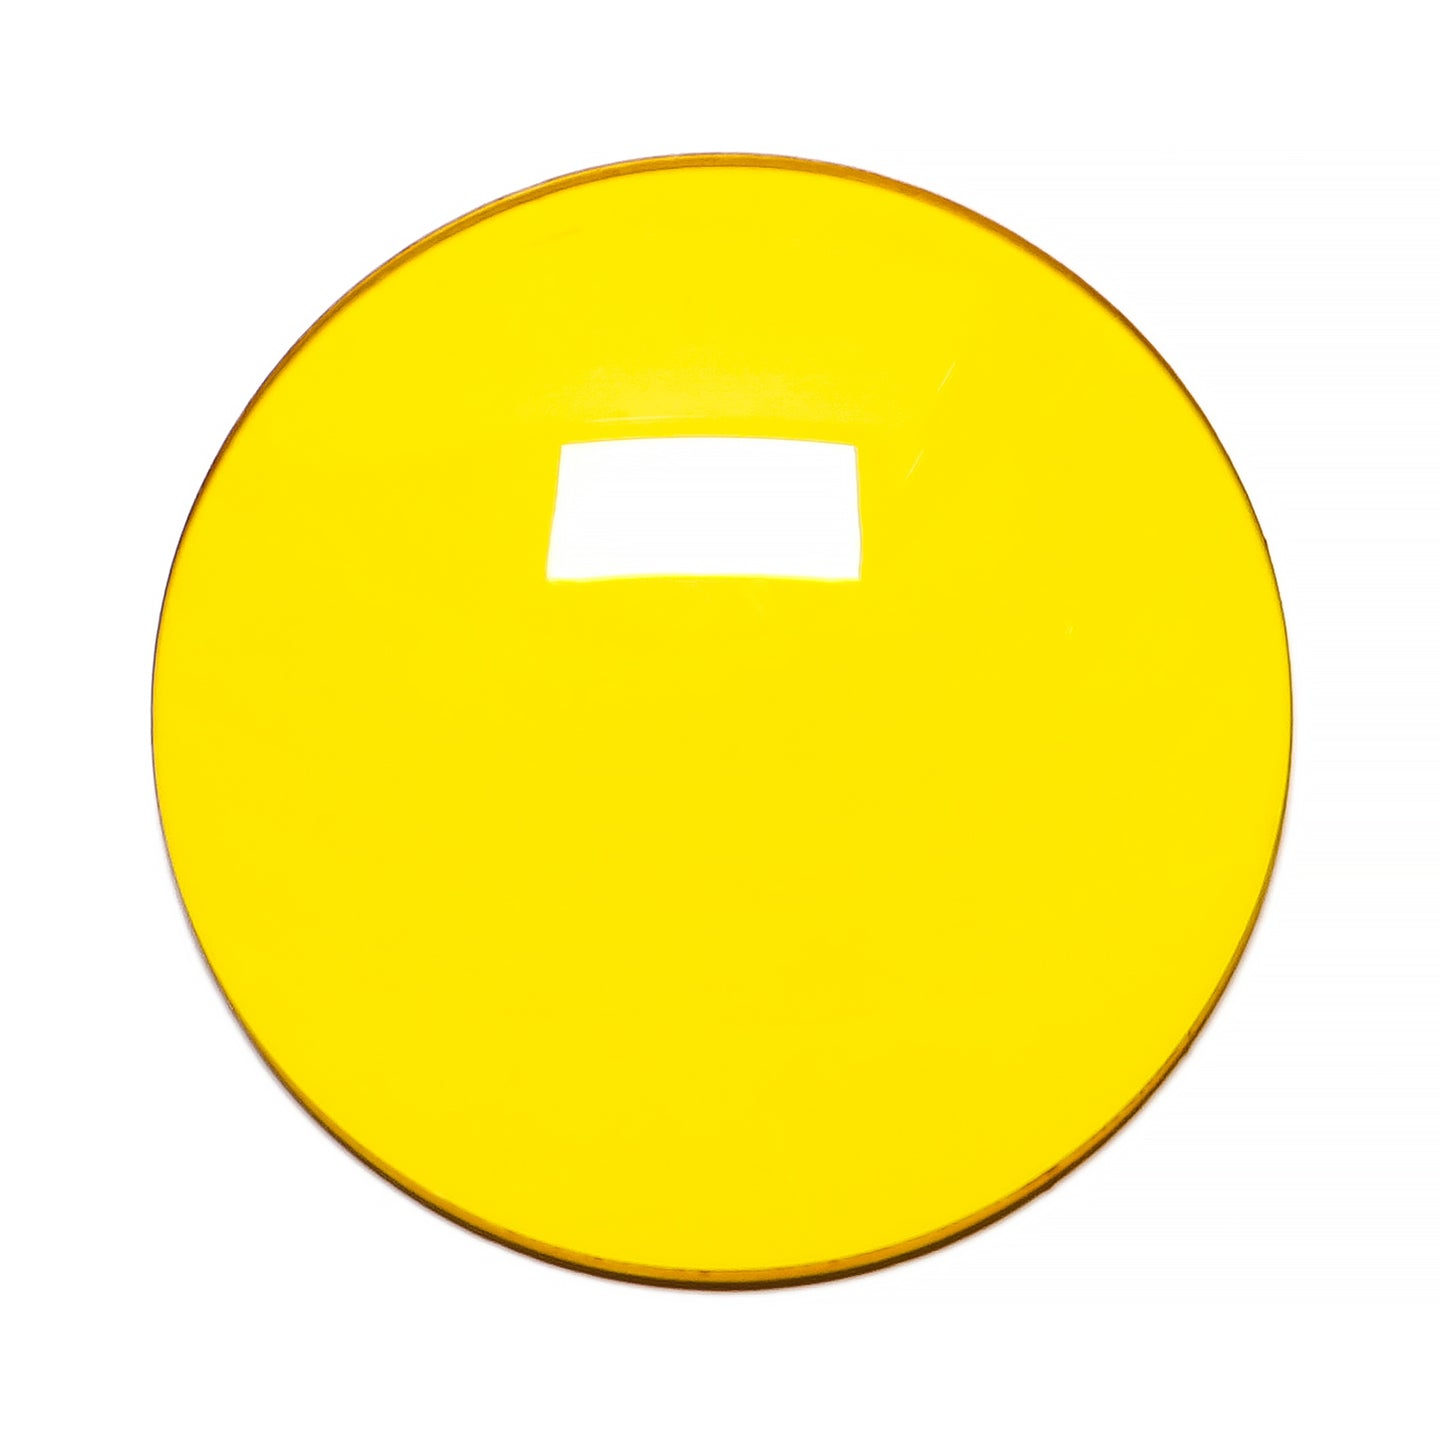 006 - Deep Yellow Solid Regular Curve Lens